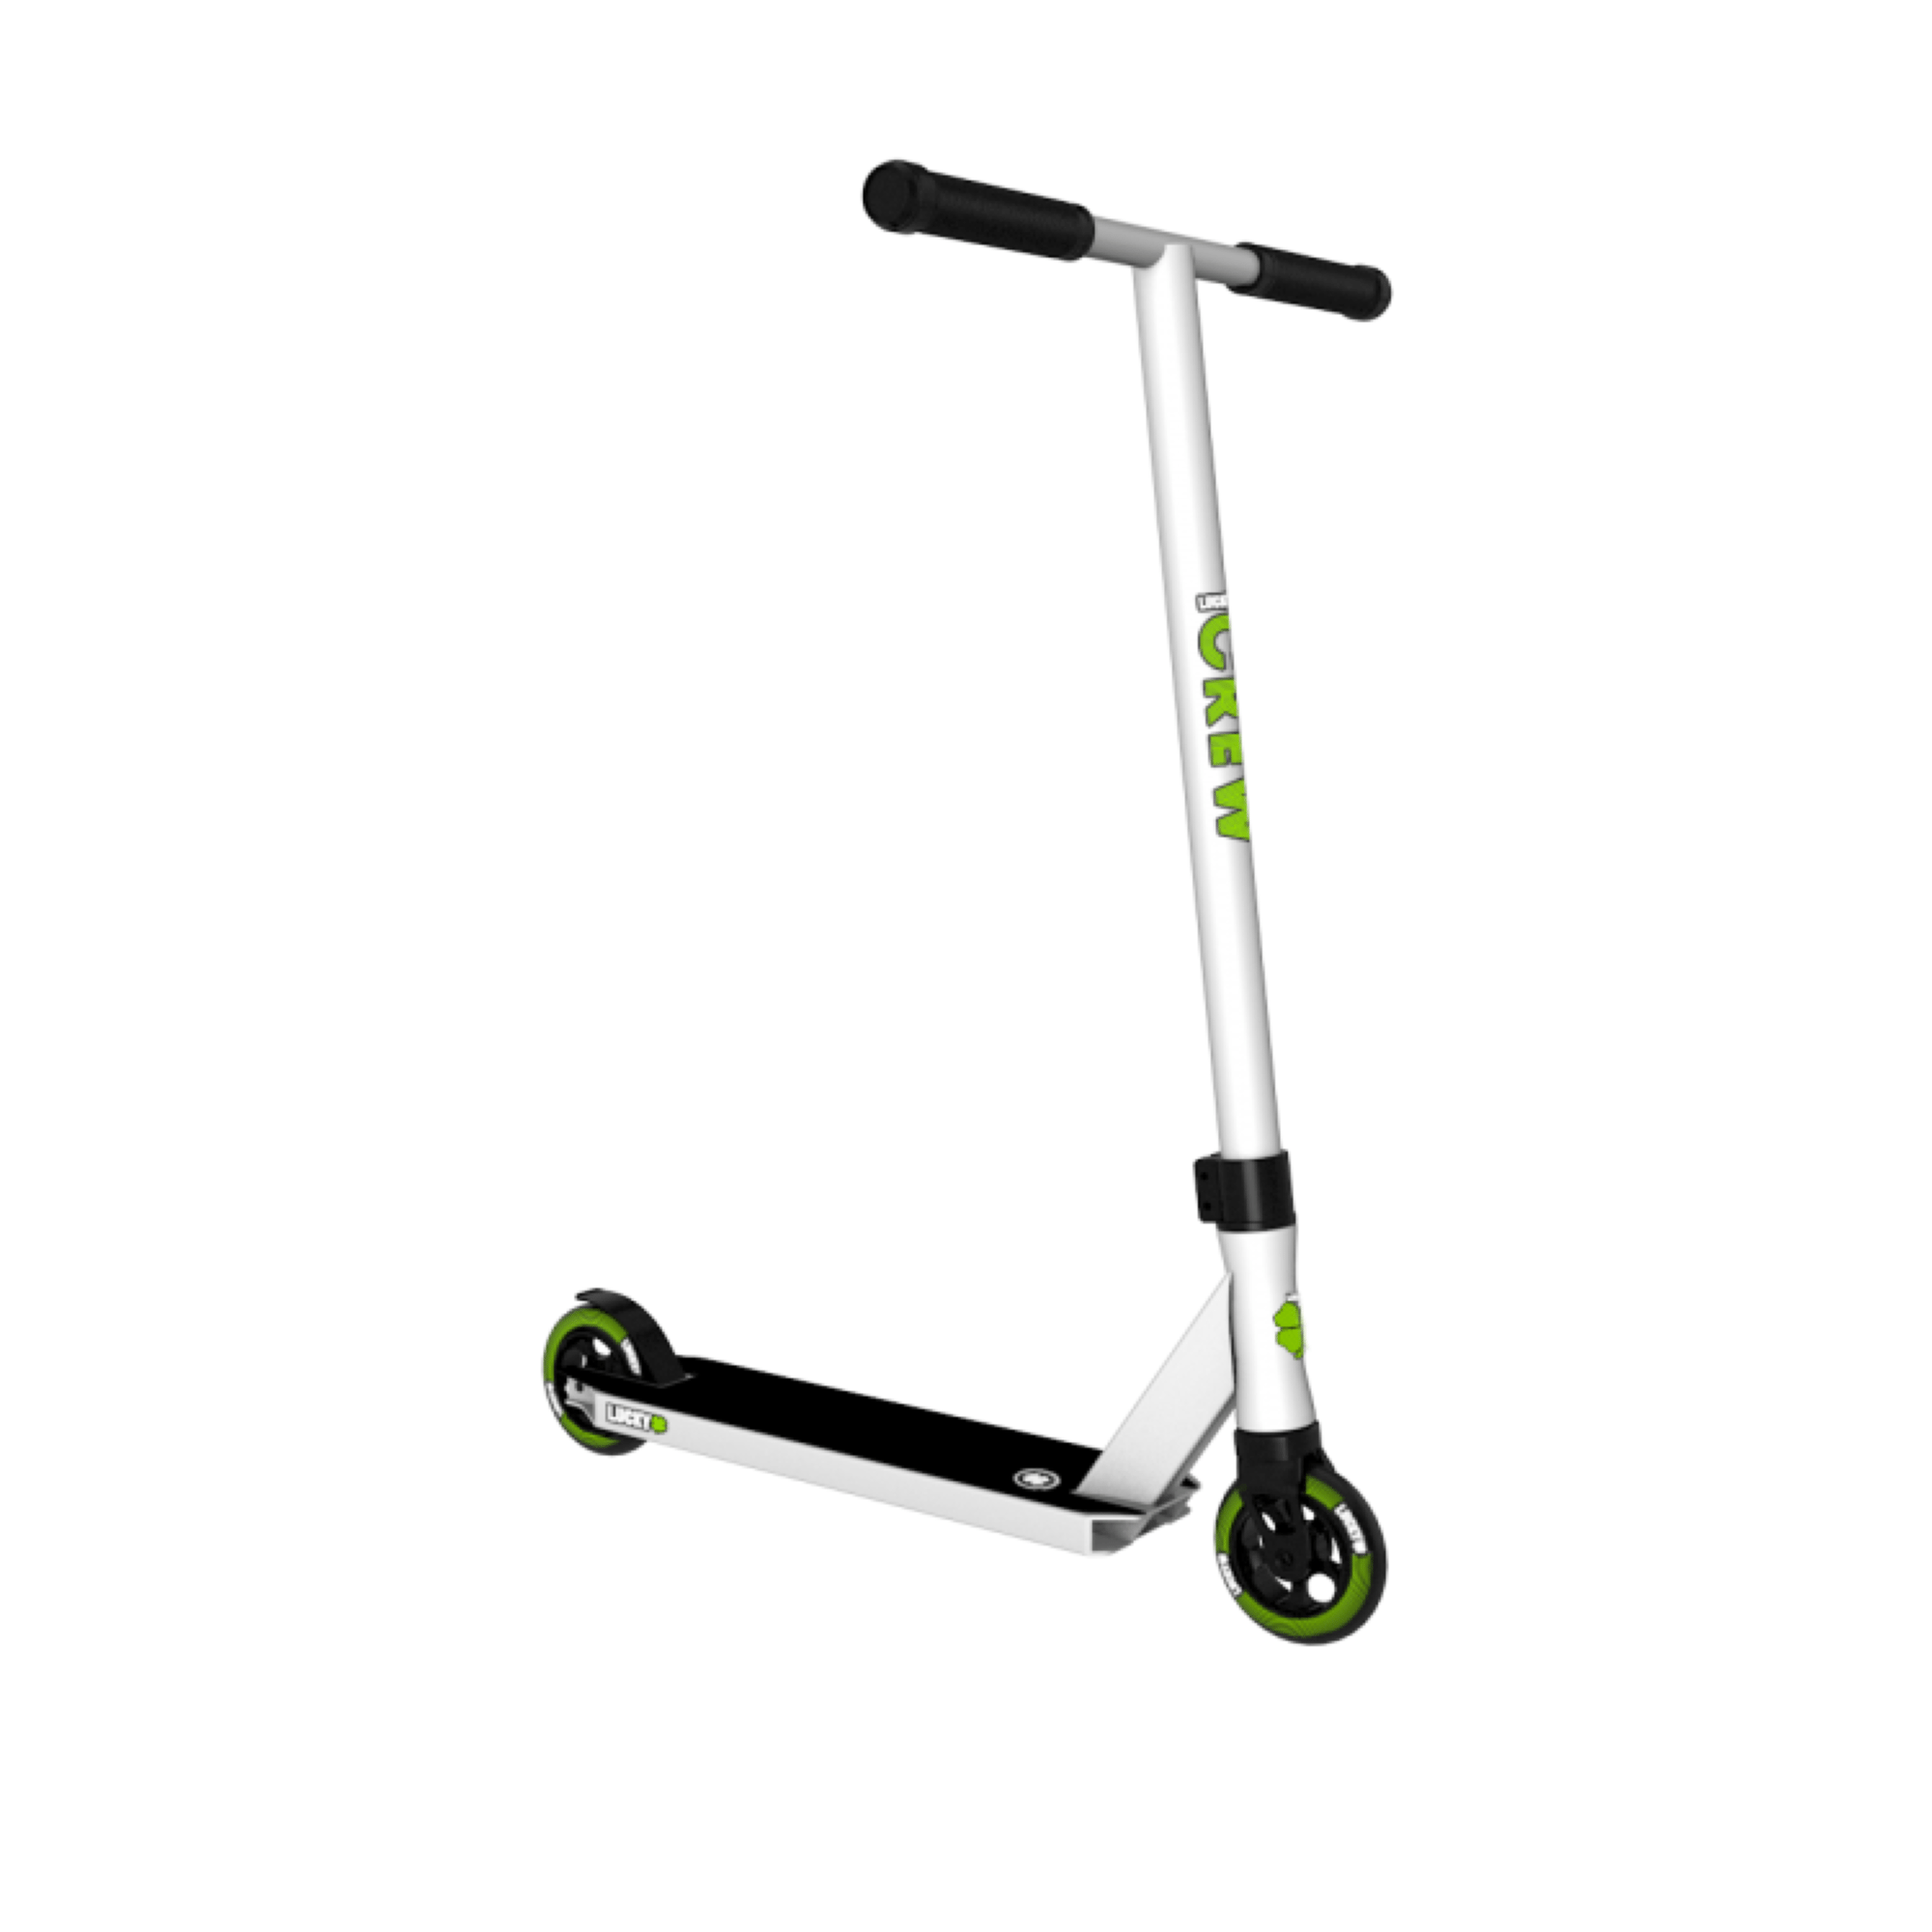 lucky crew pro stunt scooter white. Black Bedroom Furniture Sets. Home Design Ideas